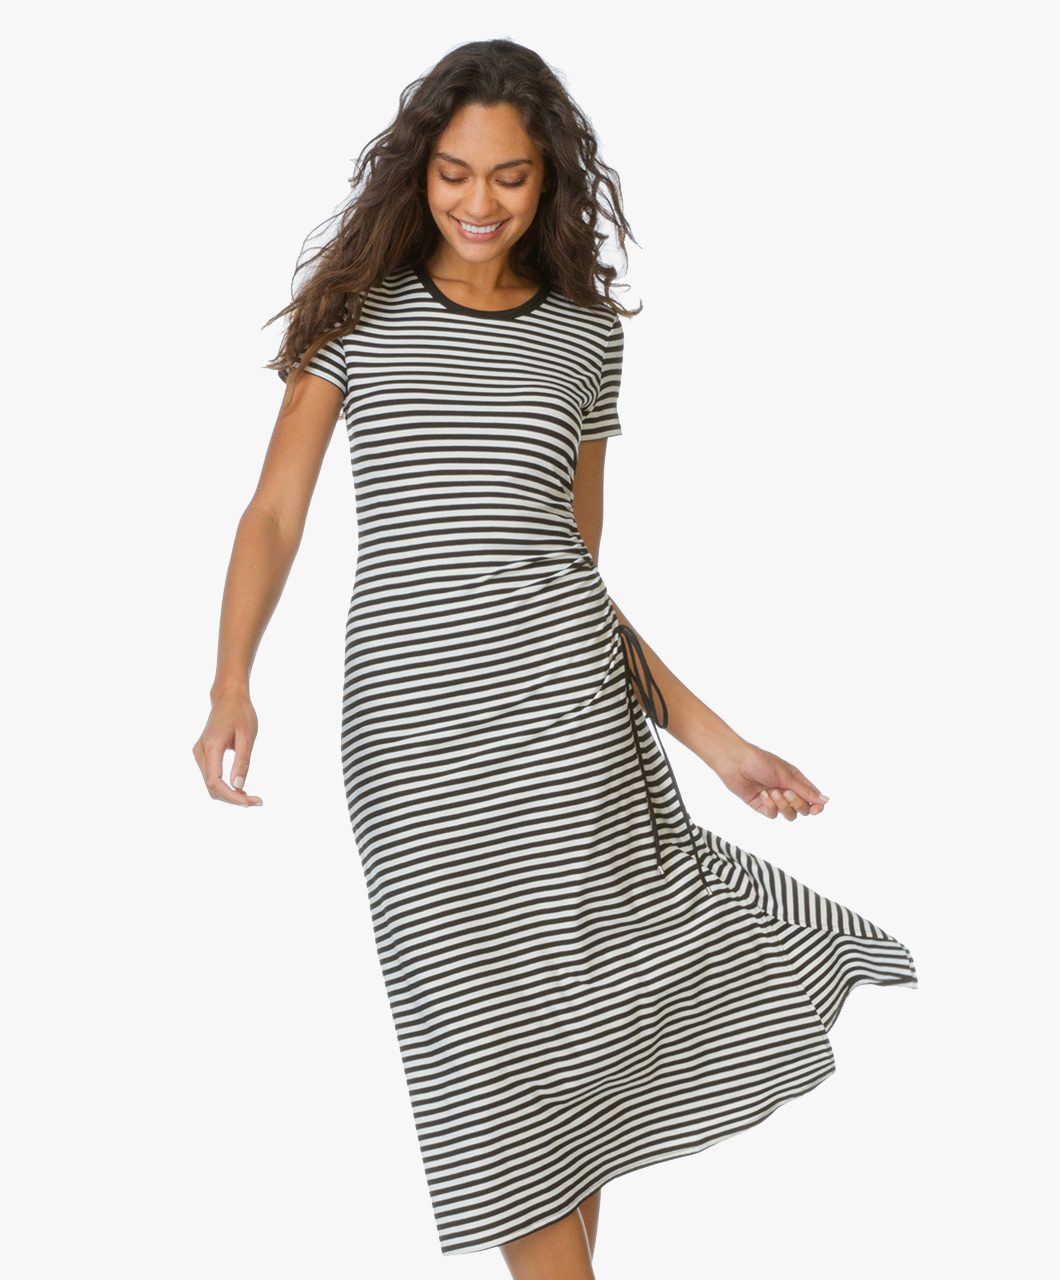 cff2aa3d Shop the look - Sporty-chic striped | Perfectly Basics